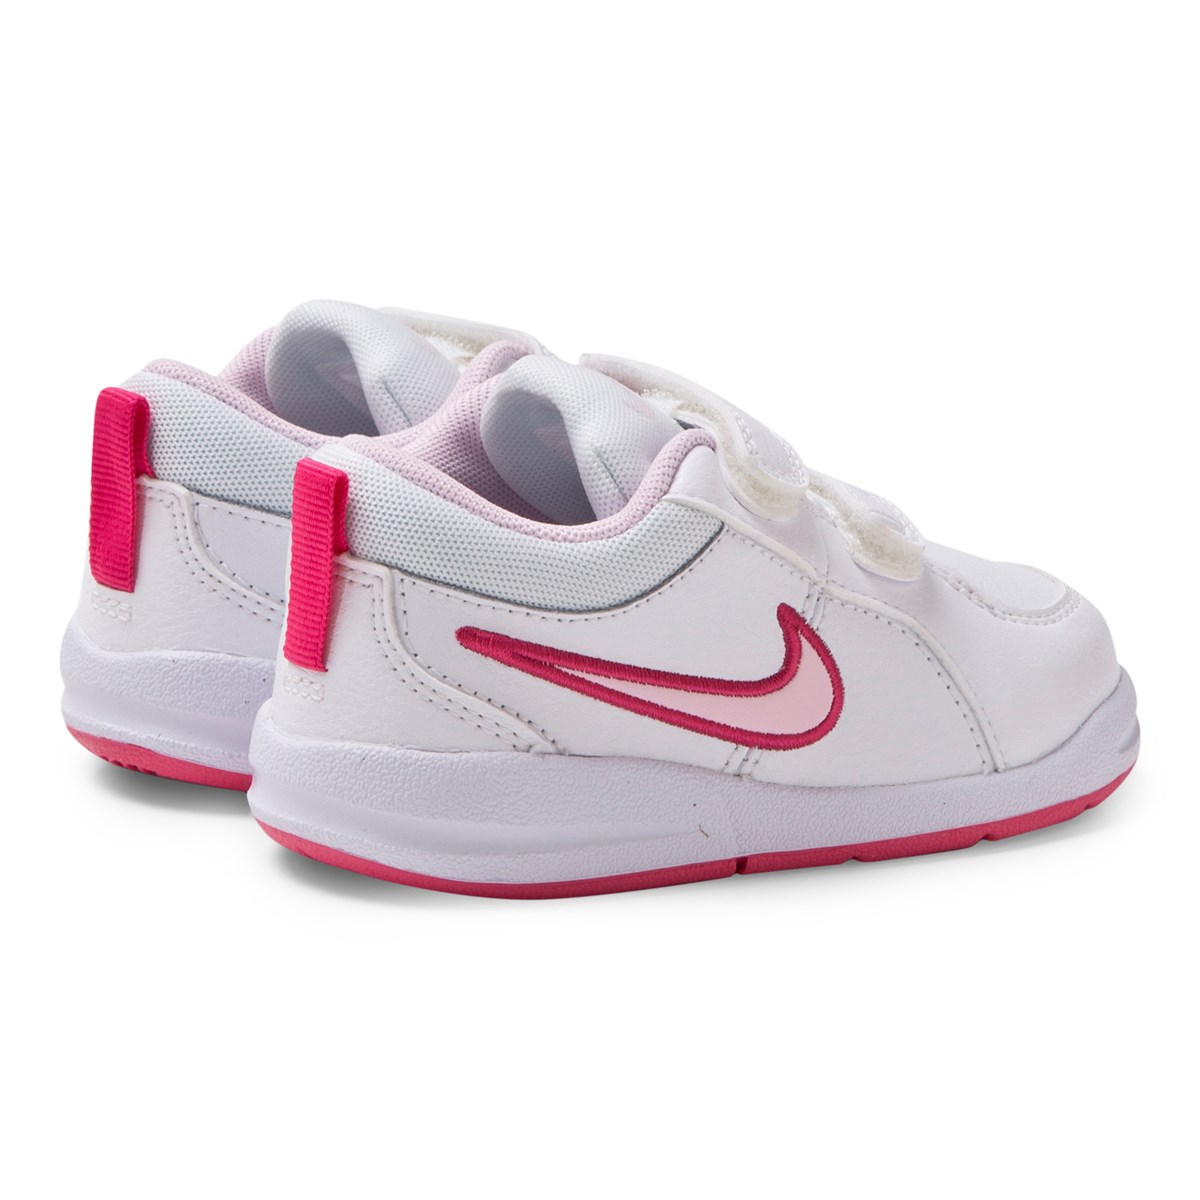 a5d94d30c36 Nike White and Pink Pico 4 Velcro Trainers